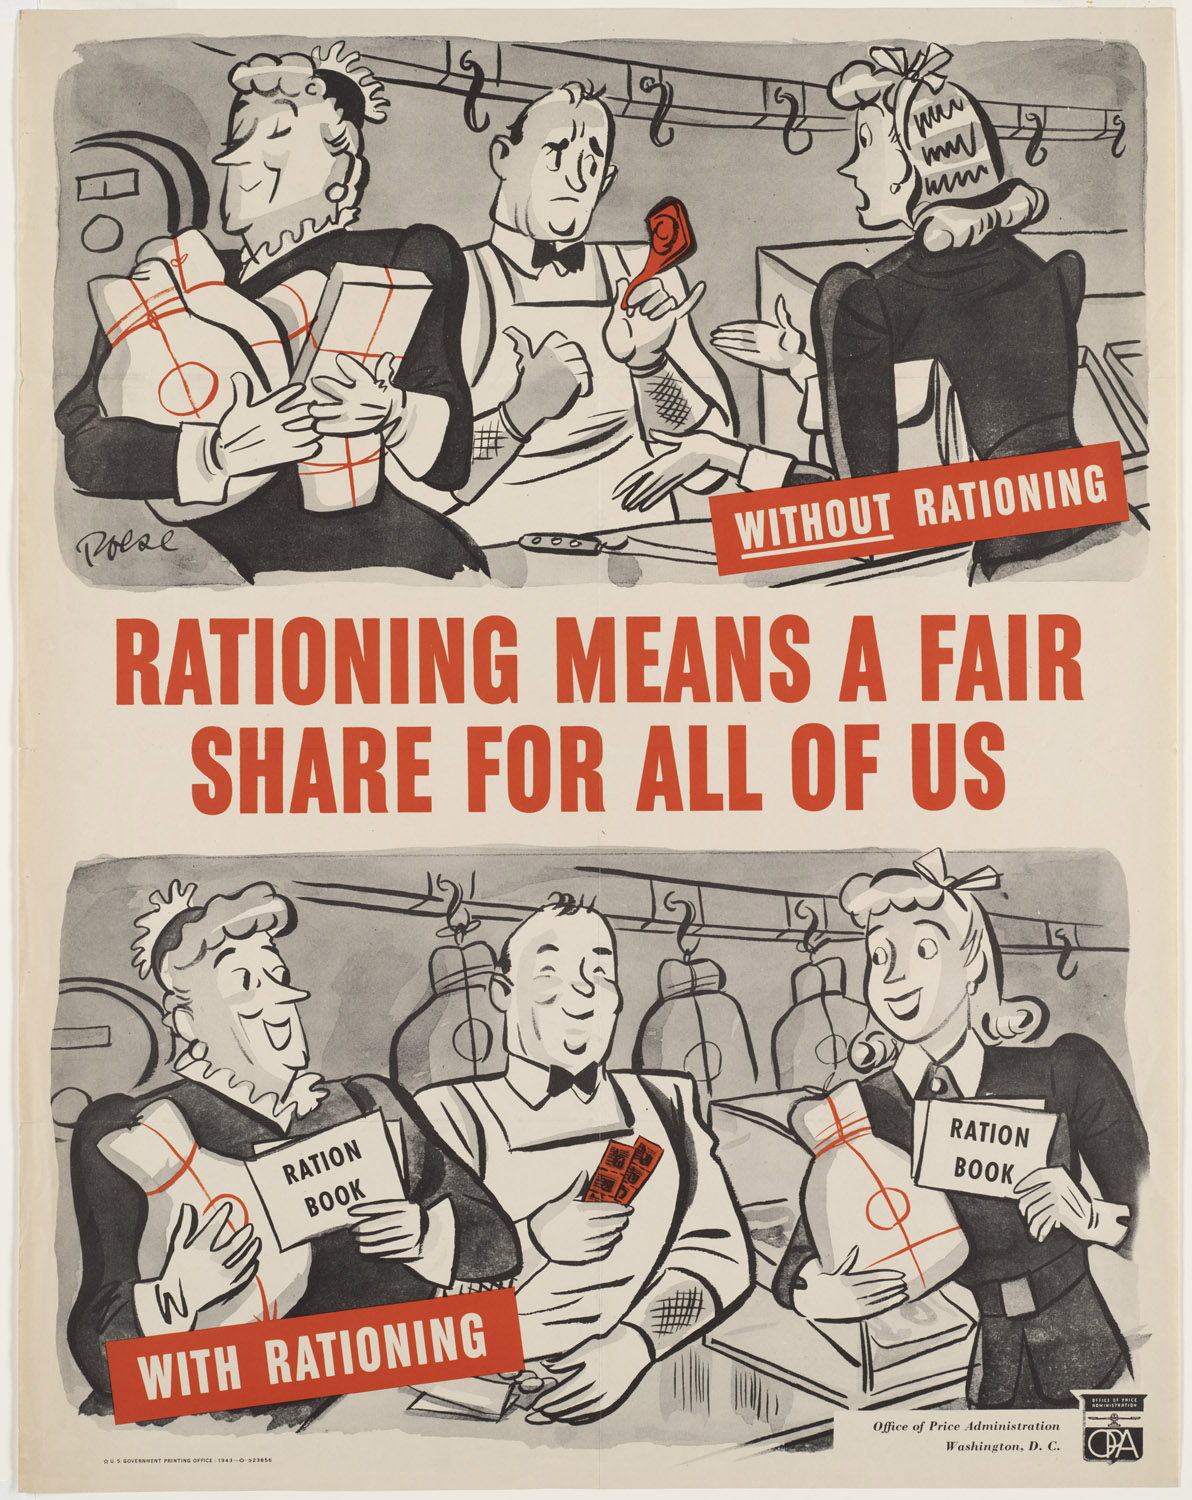 Rationing Means a Fair Share for Us All, U. S. Office of Price Administration, 1943. Courtesy of the Boston Public Library.